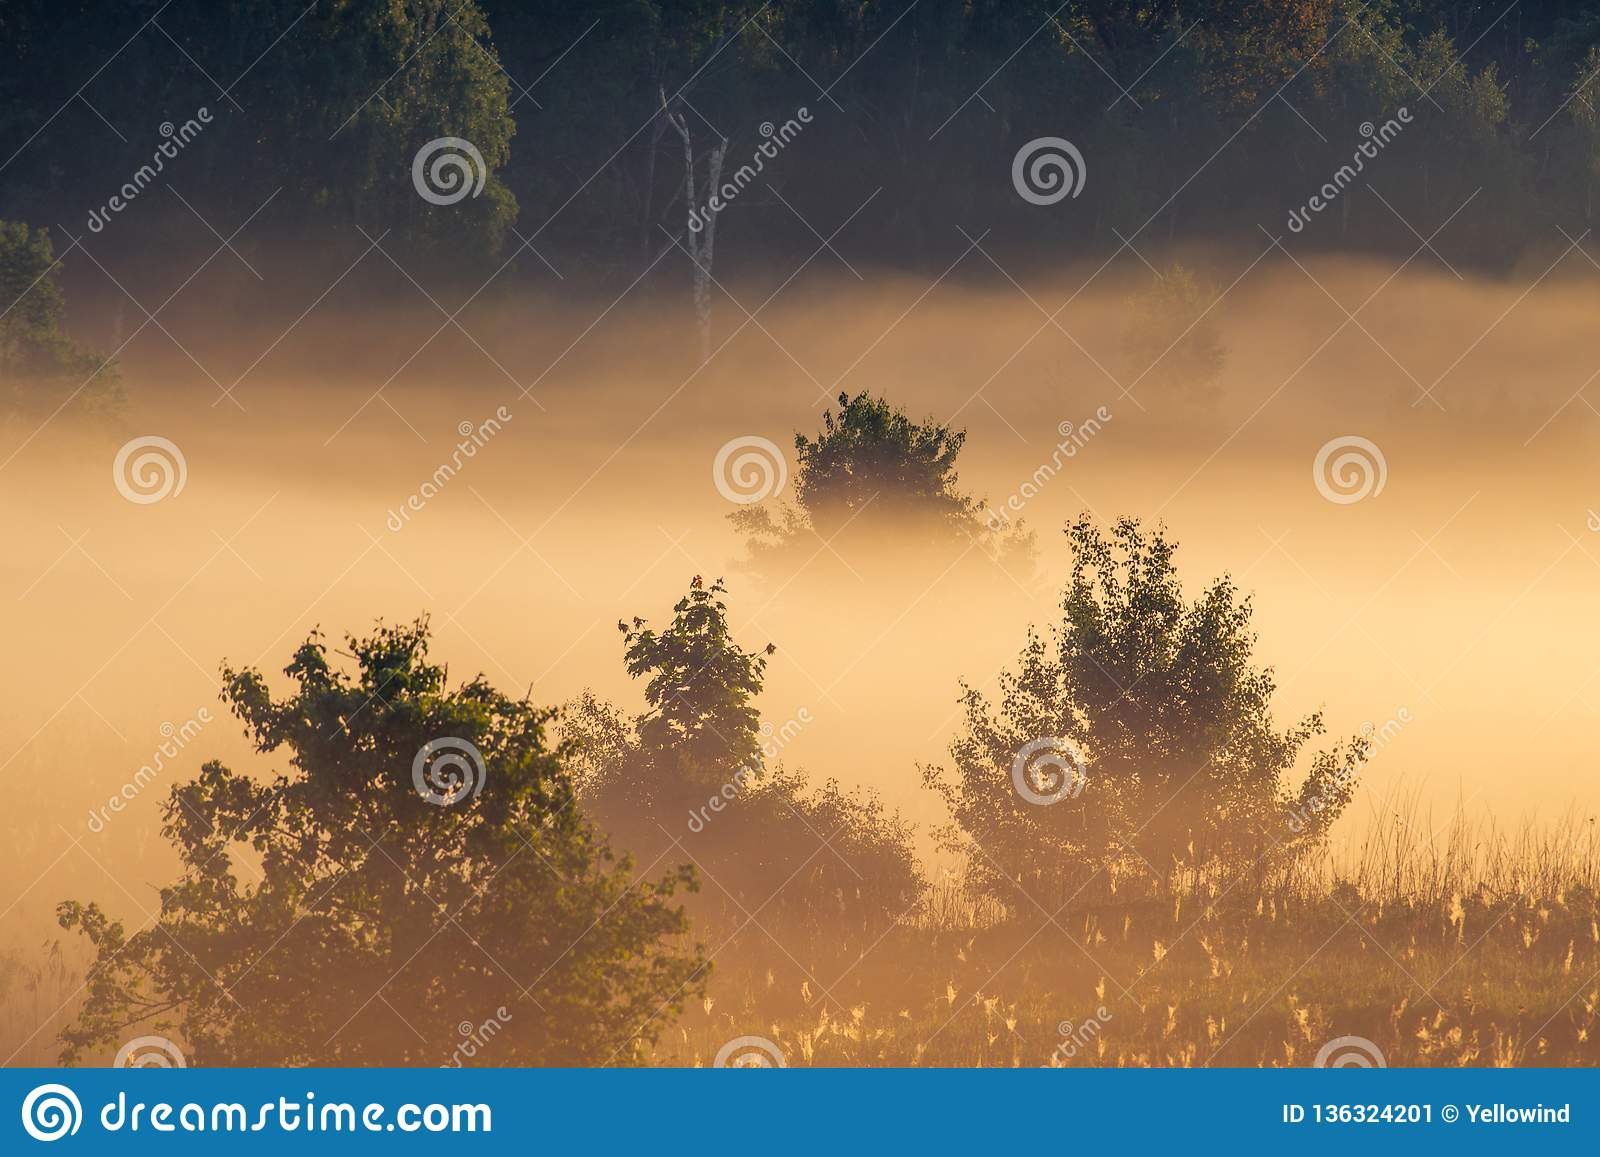 Sunrise landscape of trees in misty morning